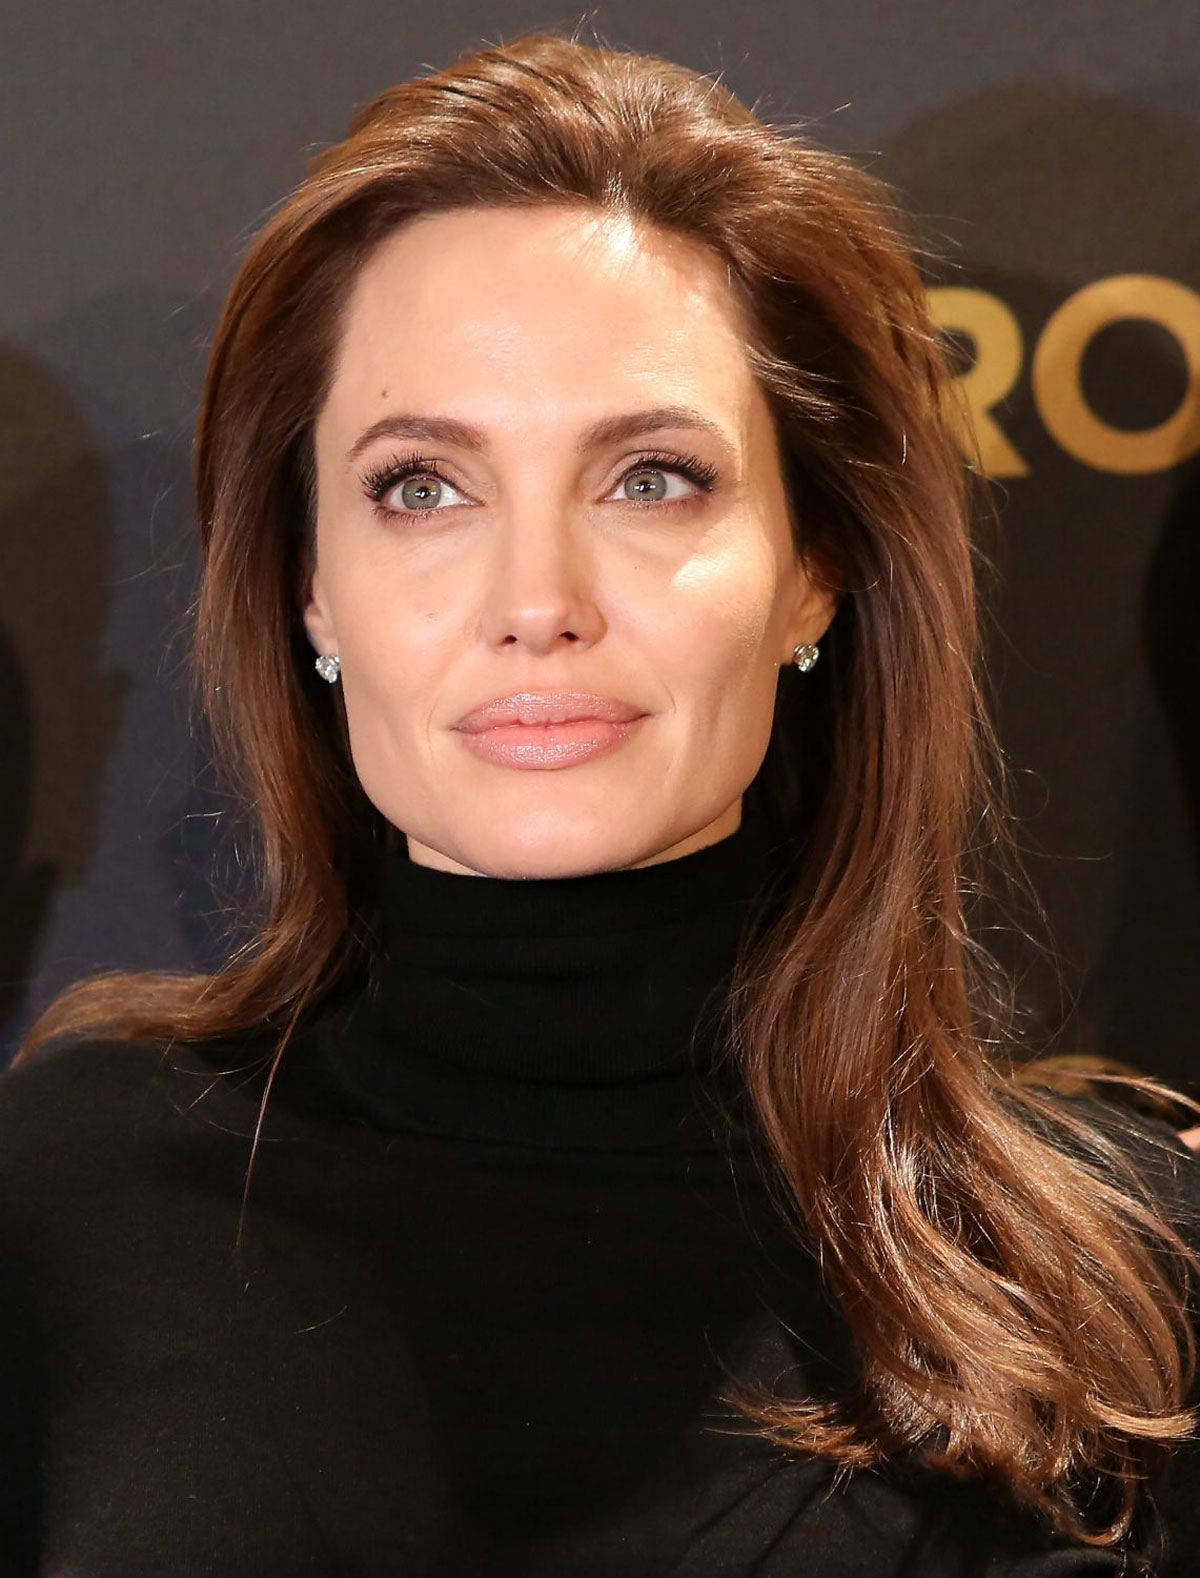 ANGELINA JOLIE at Unbroken Photocall in Berlin - HawtCelebs ...